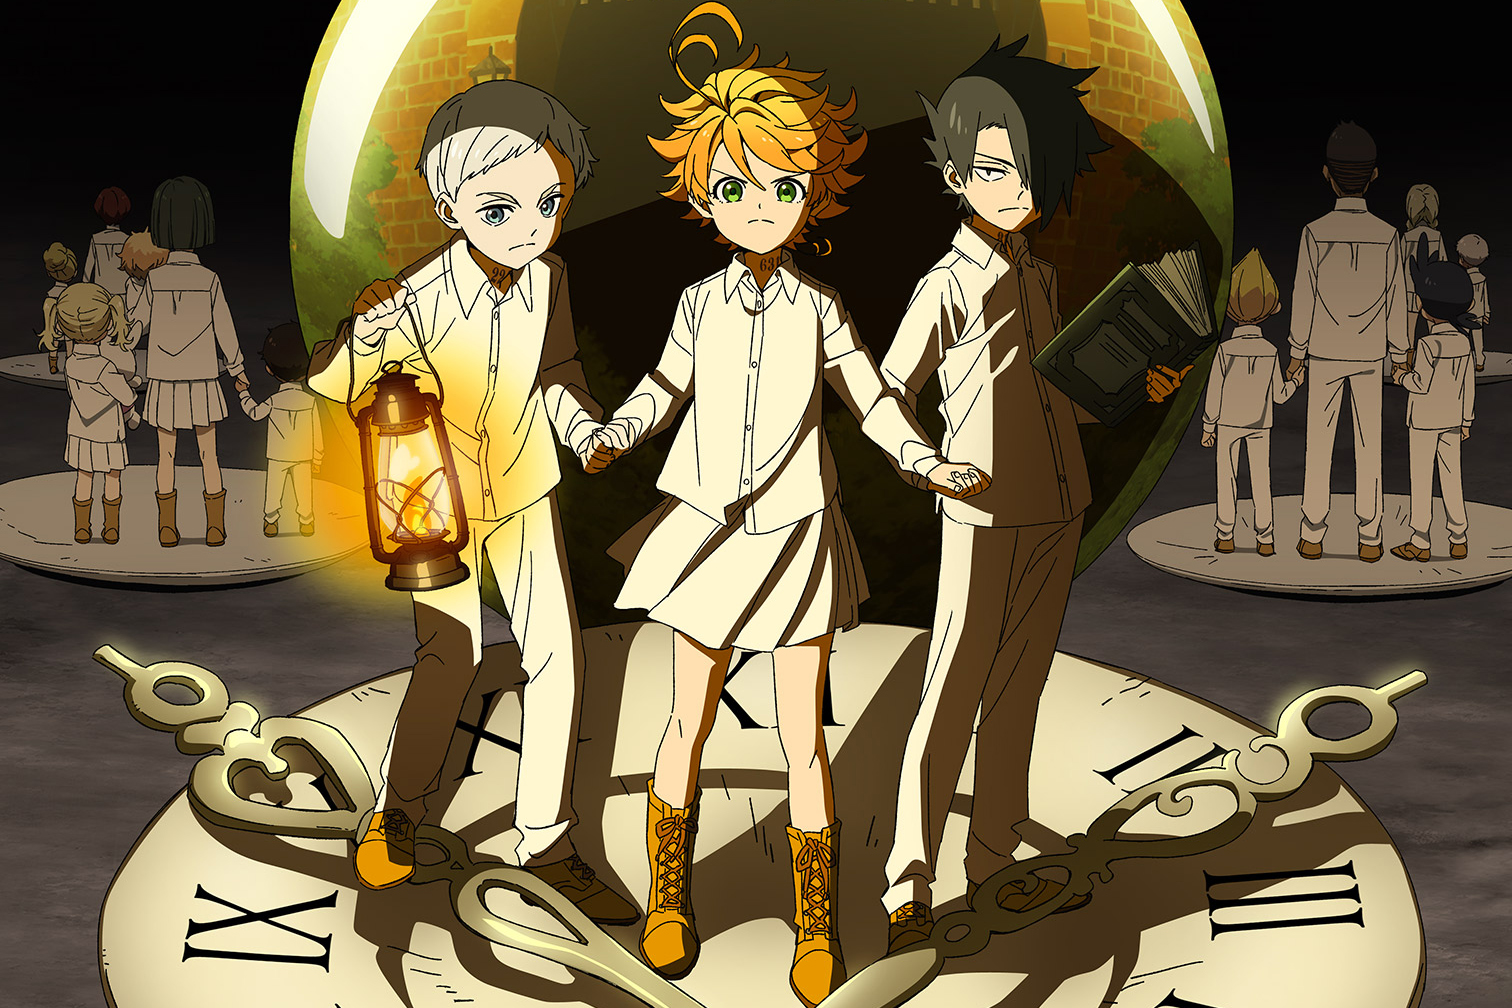 Best Anime of 2019 - The Promised Neverland